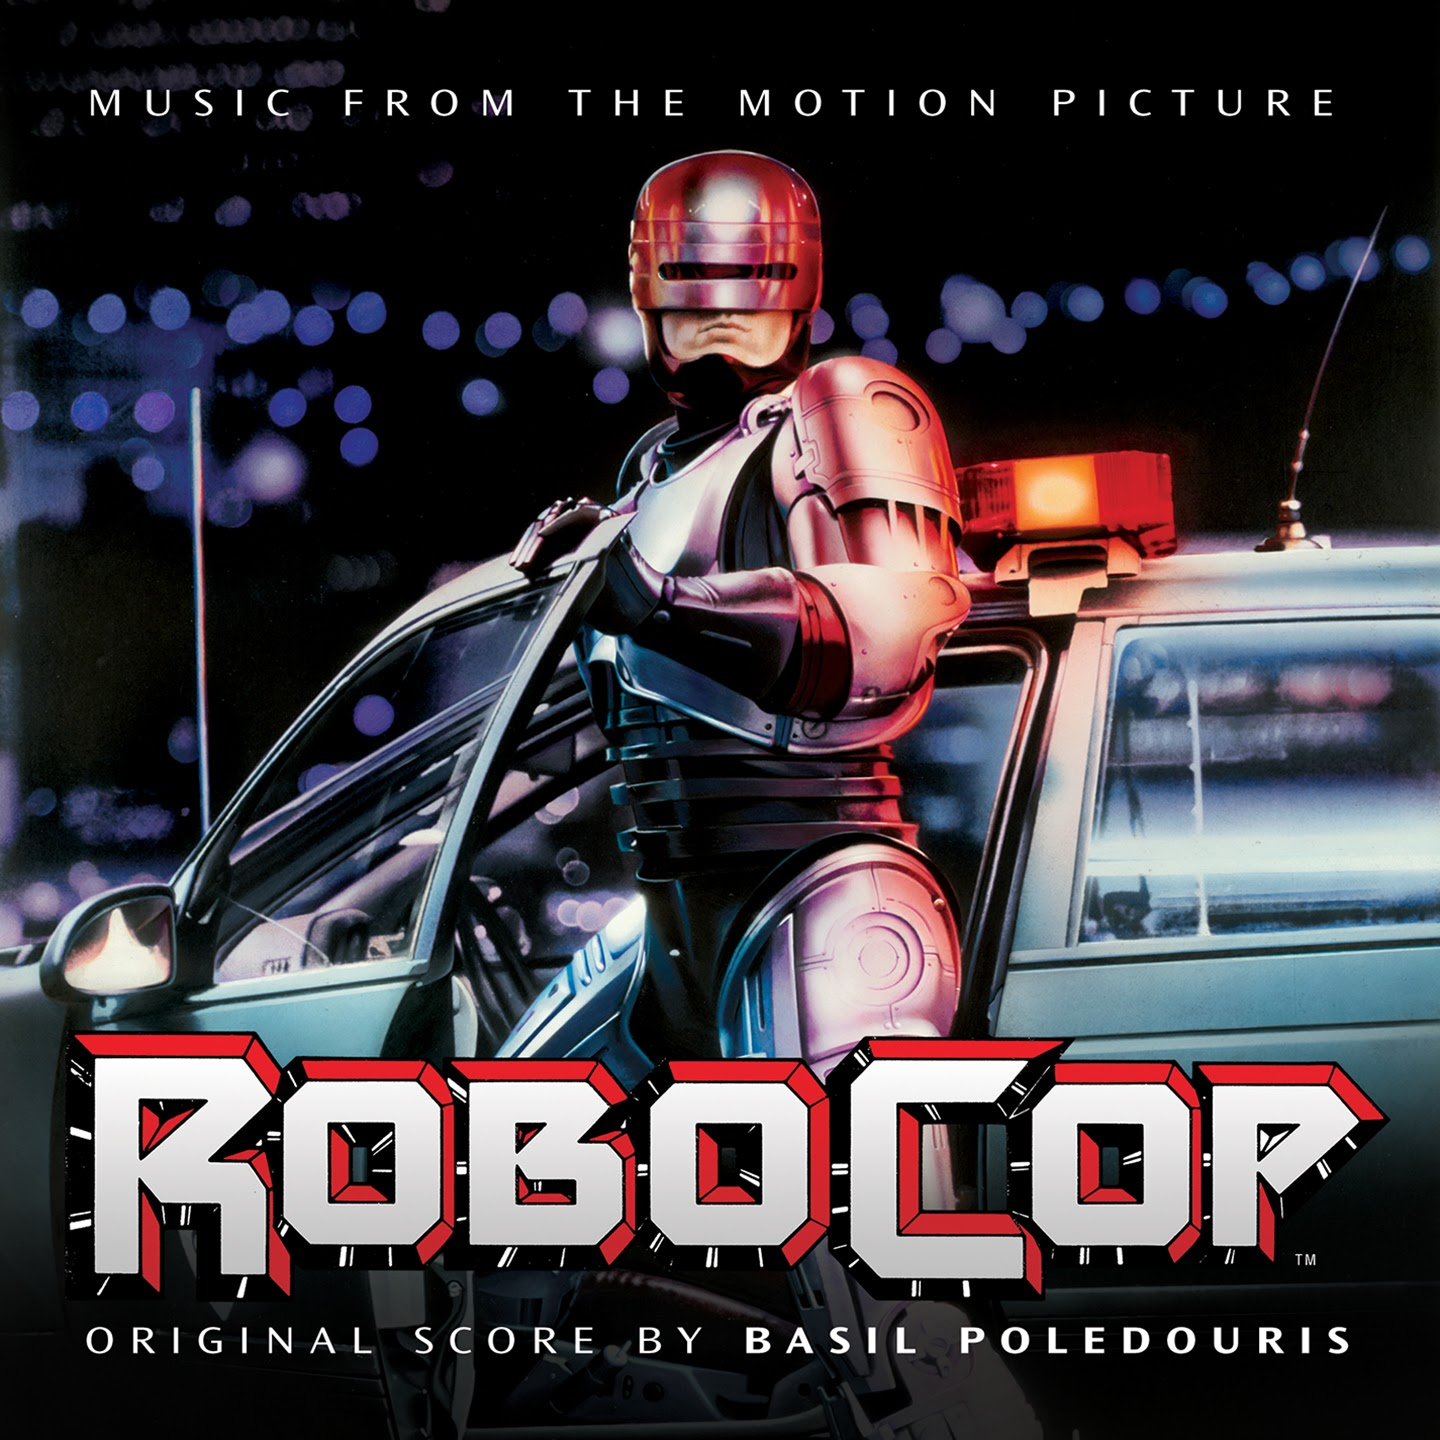 Album Artist: Basil Poledouris / Album Title: RoboCop – Original Score by Basil Poledouris (Music from the Motion Picture)